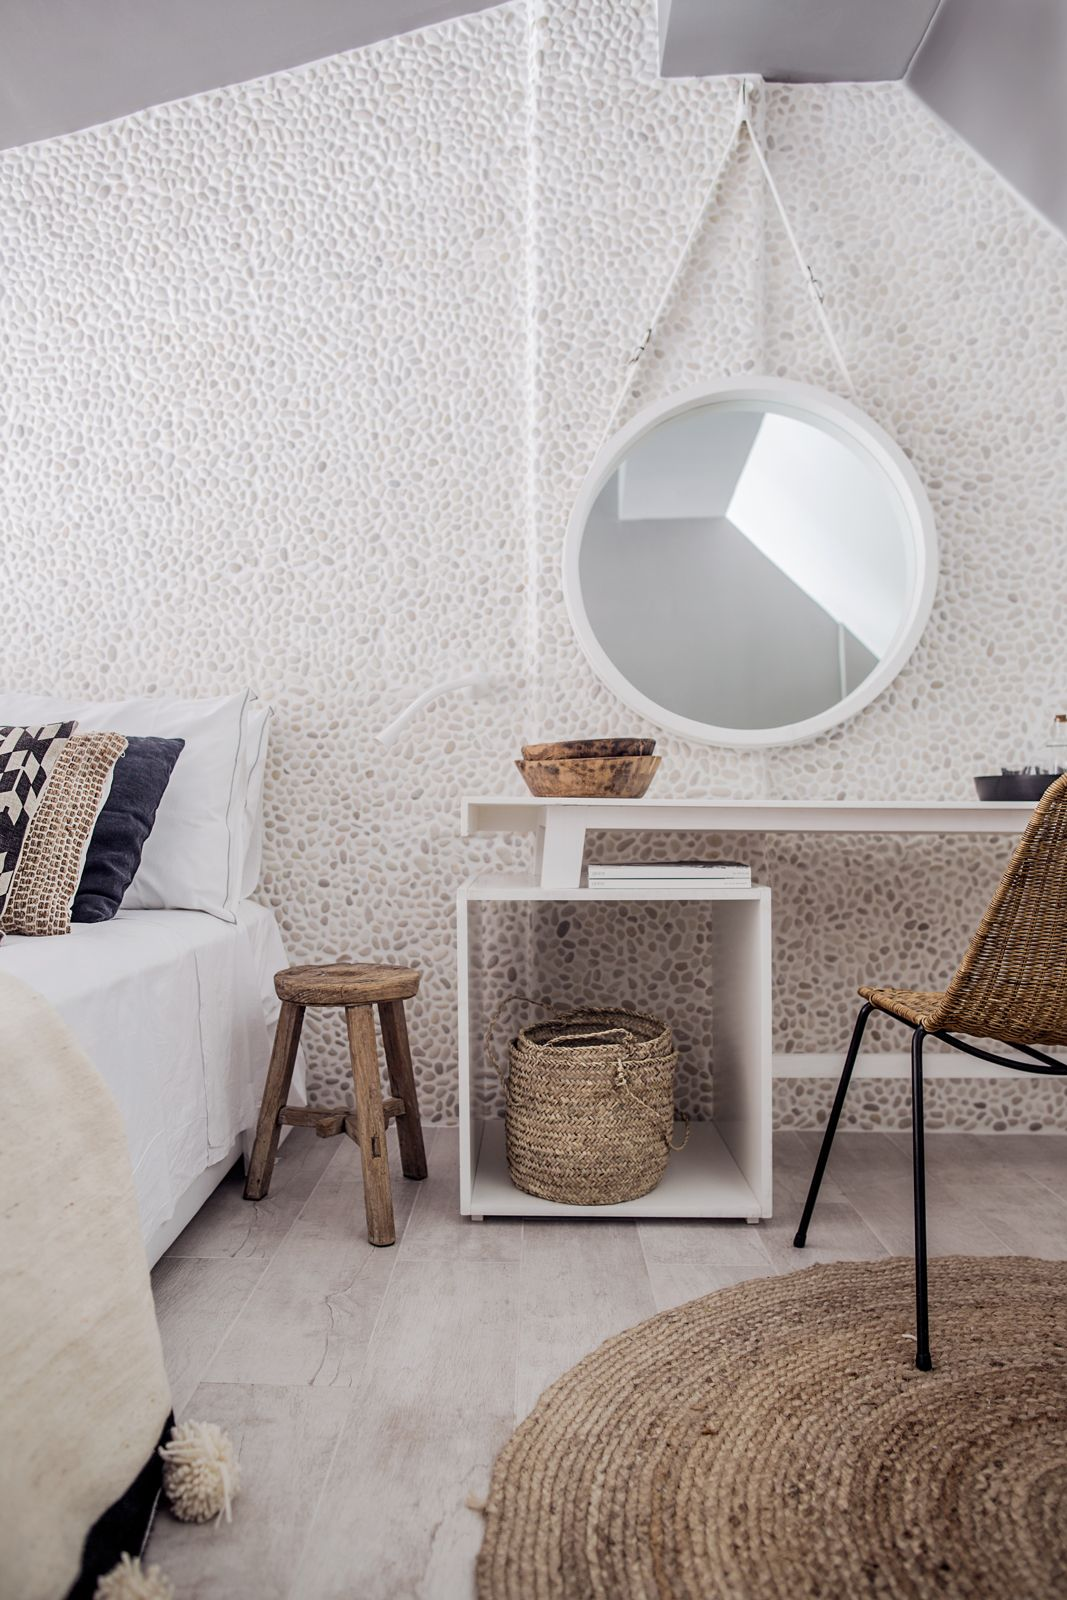 Hotel Room Decoration: A New Hotel For The Bohemian Spirit